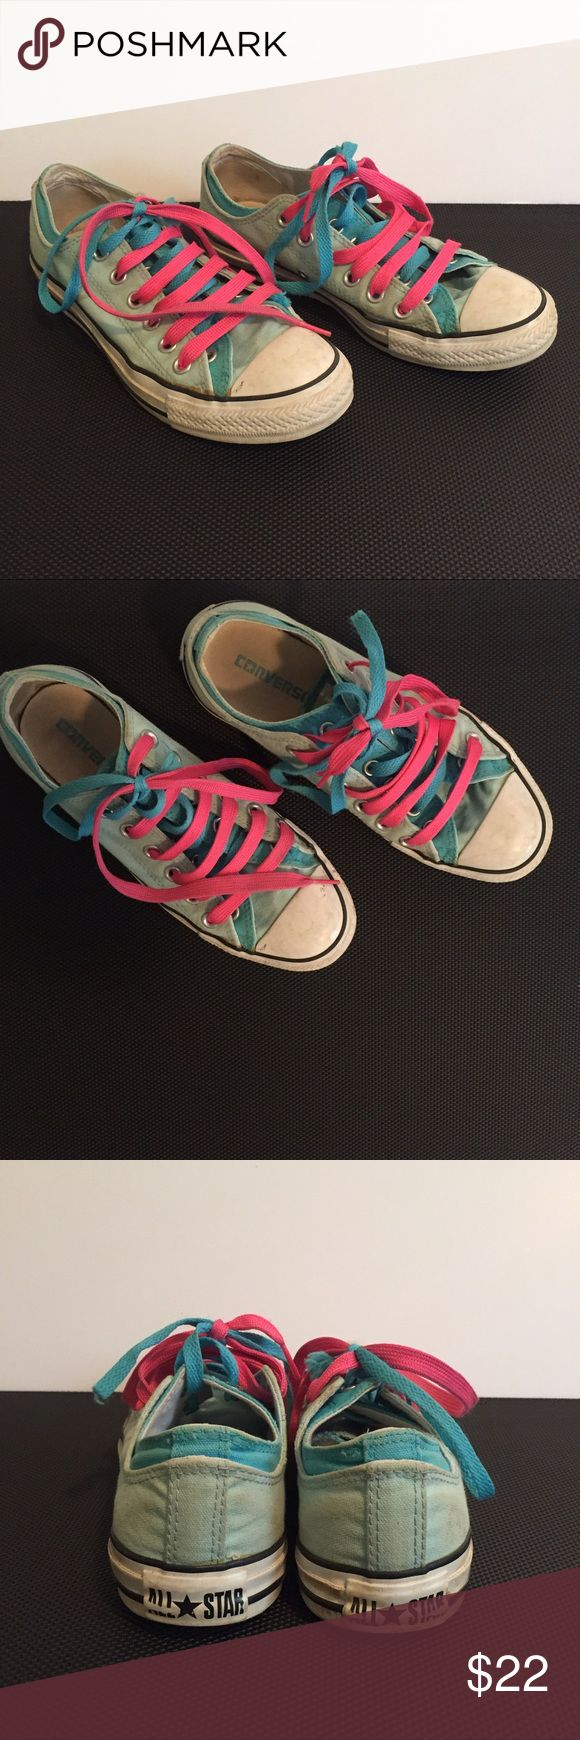 Converse Double Tongue Shoes Turquoise Light Blue Size 8. Show some signs of dirt and light wear but still in nice shape. Two shades of blue with both blue and pink laces. Converse Shoes Sneakers